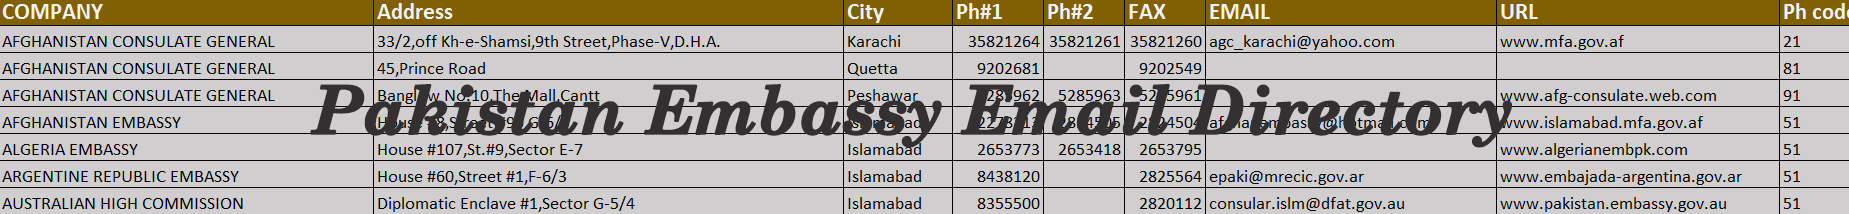 Pakistan Embassy Email Addresses